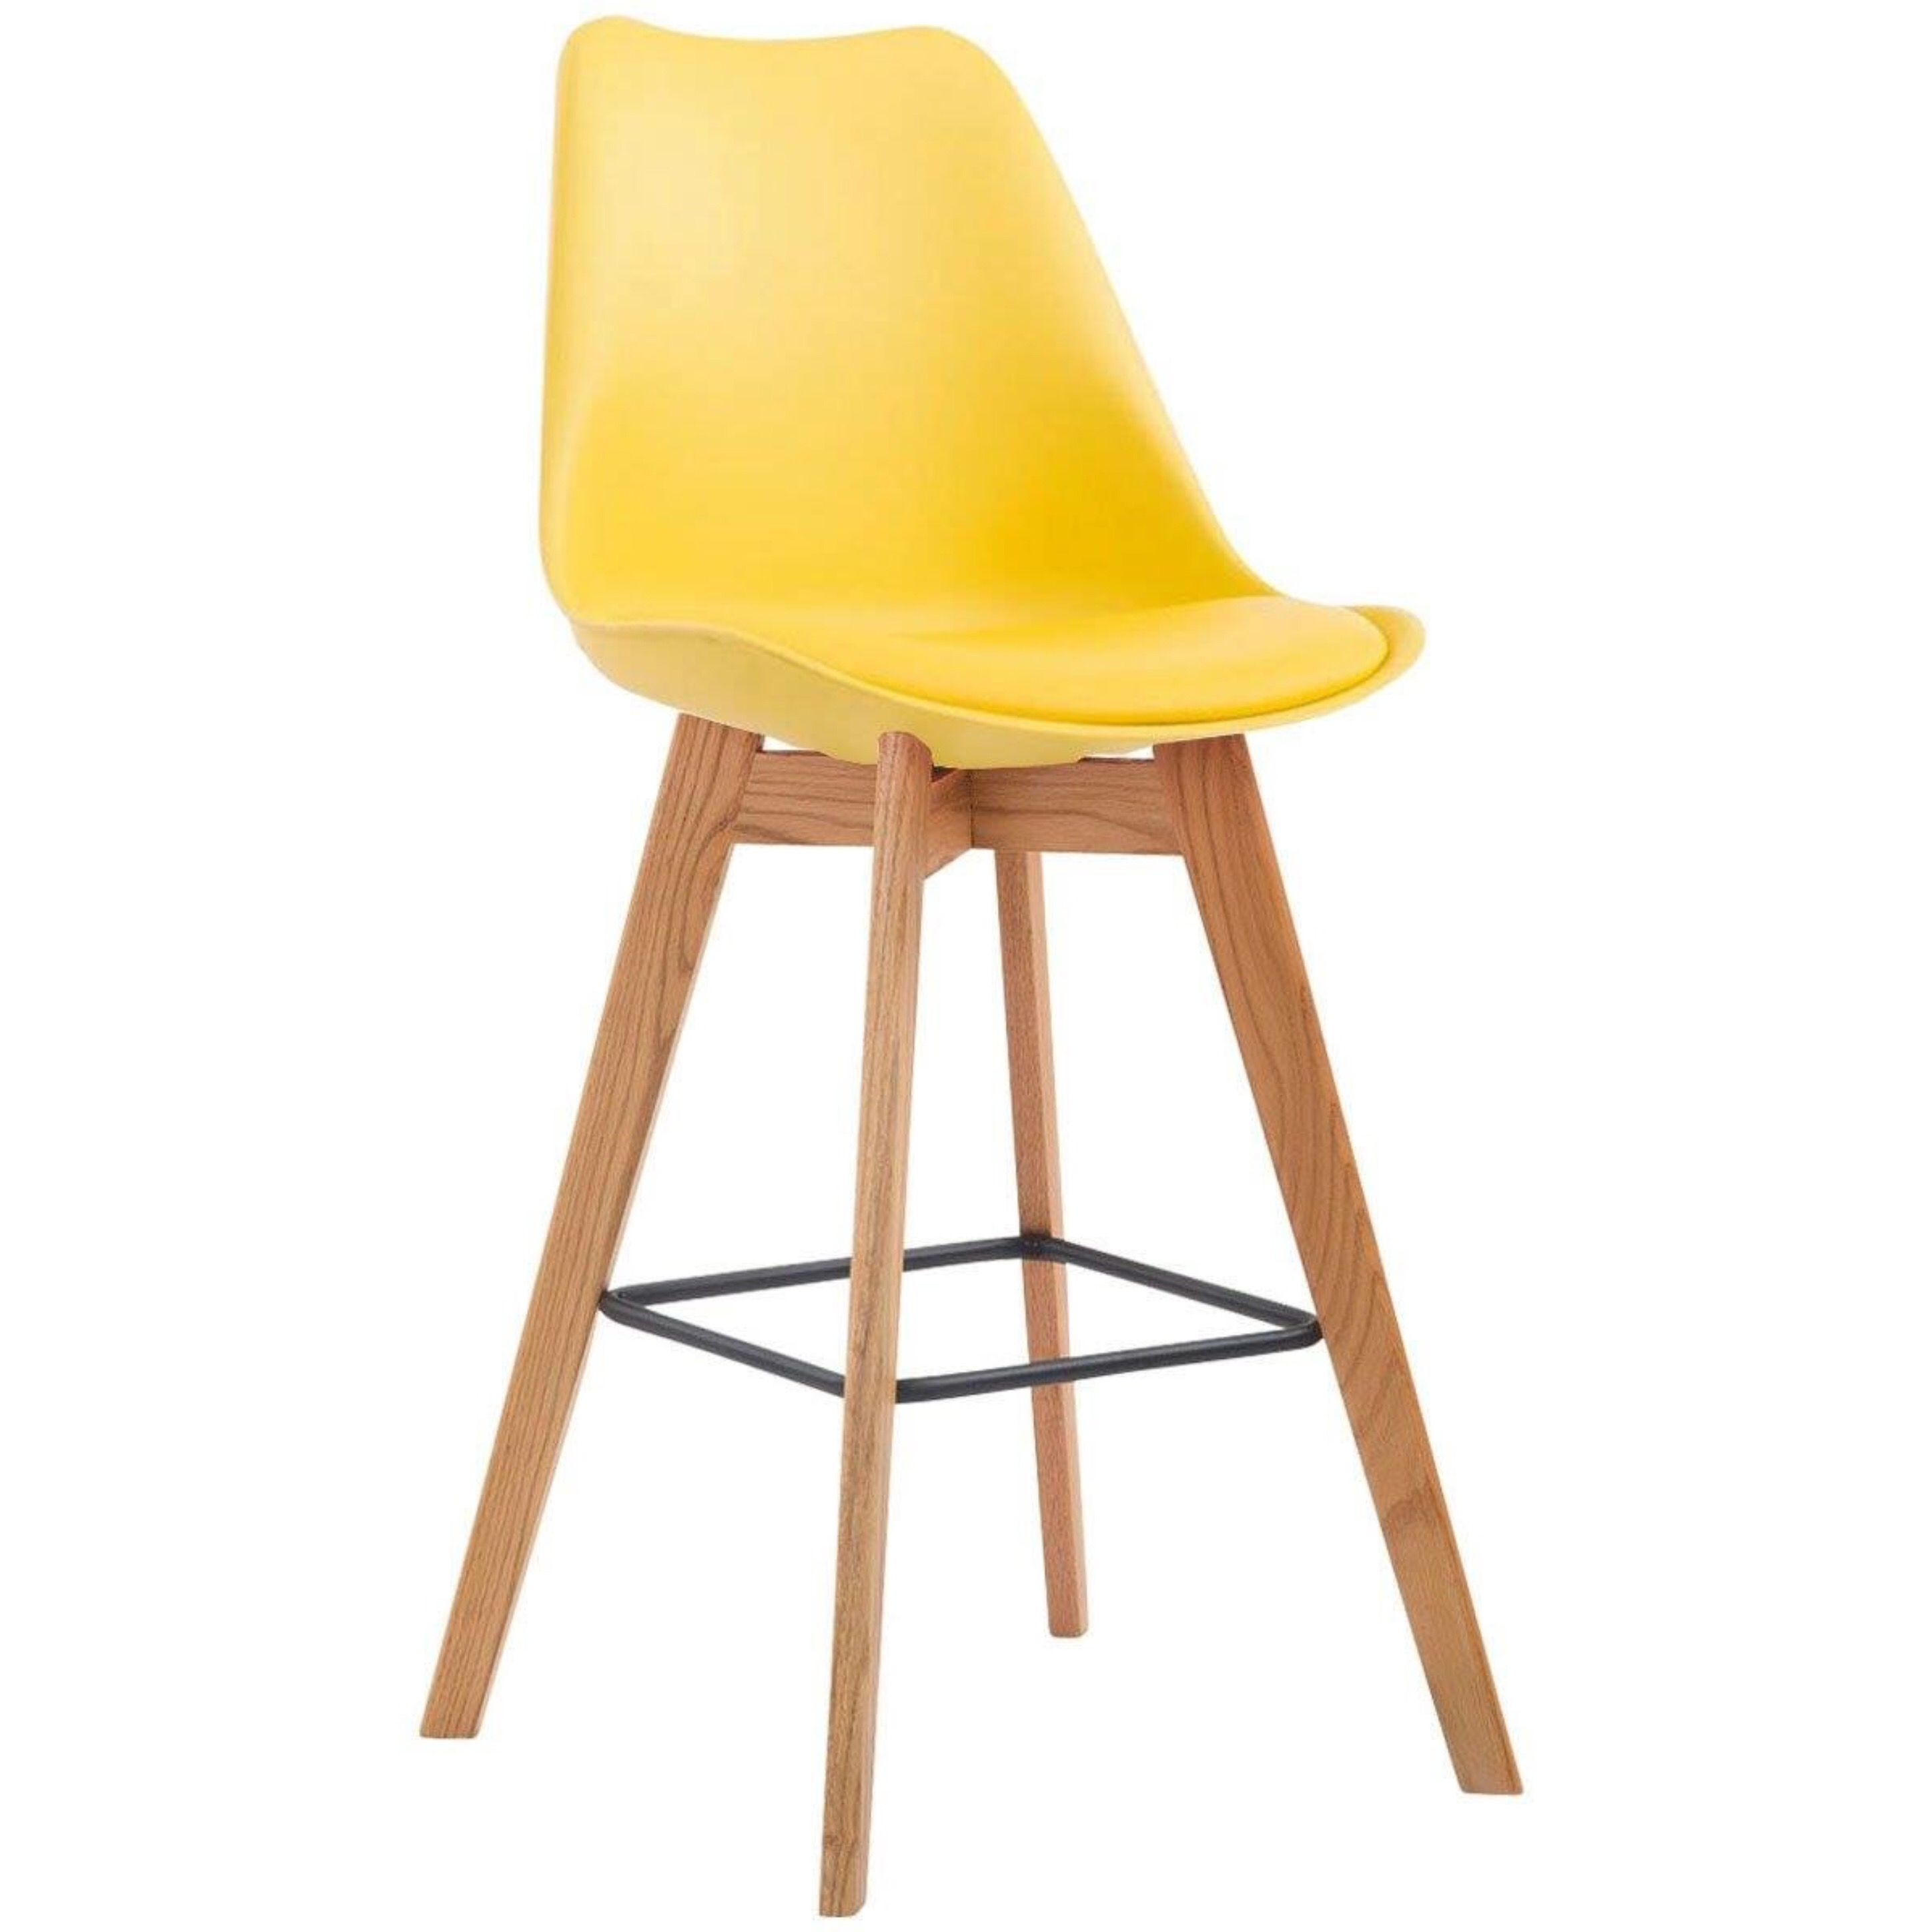 Pin By Deluzzo On Deluzzohoz Eames Chair Chair Furniture